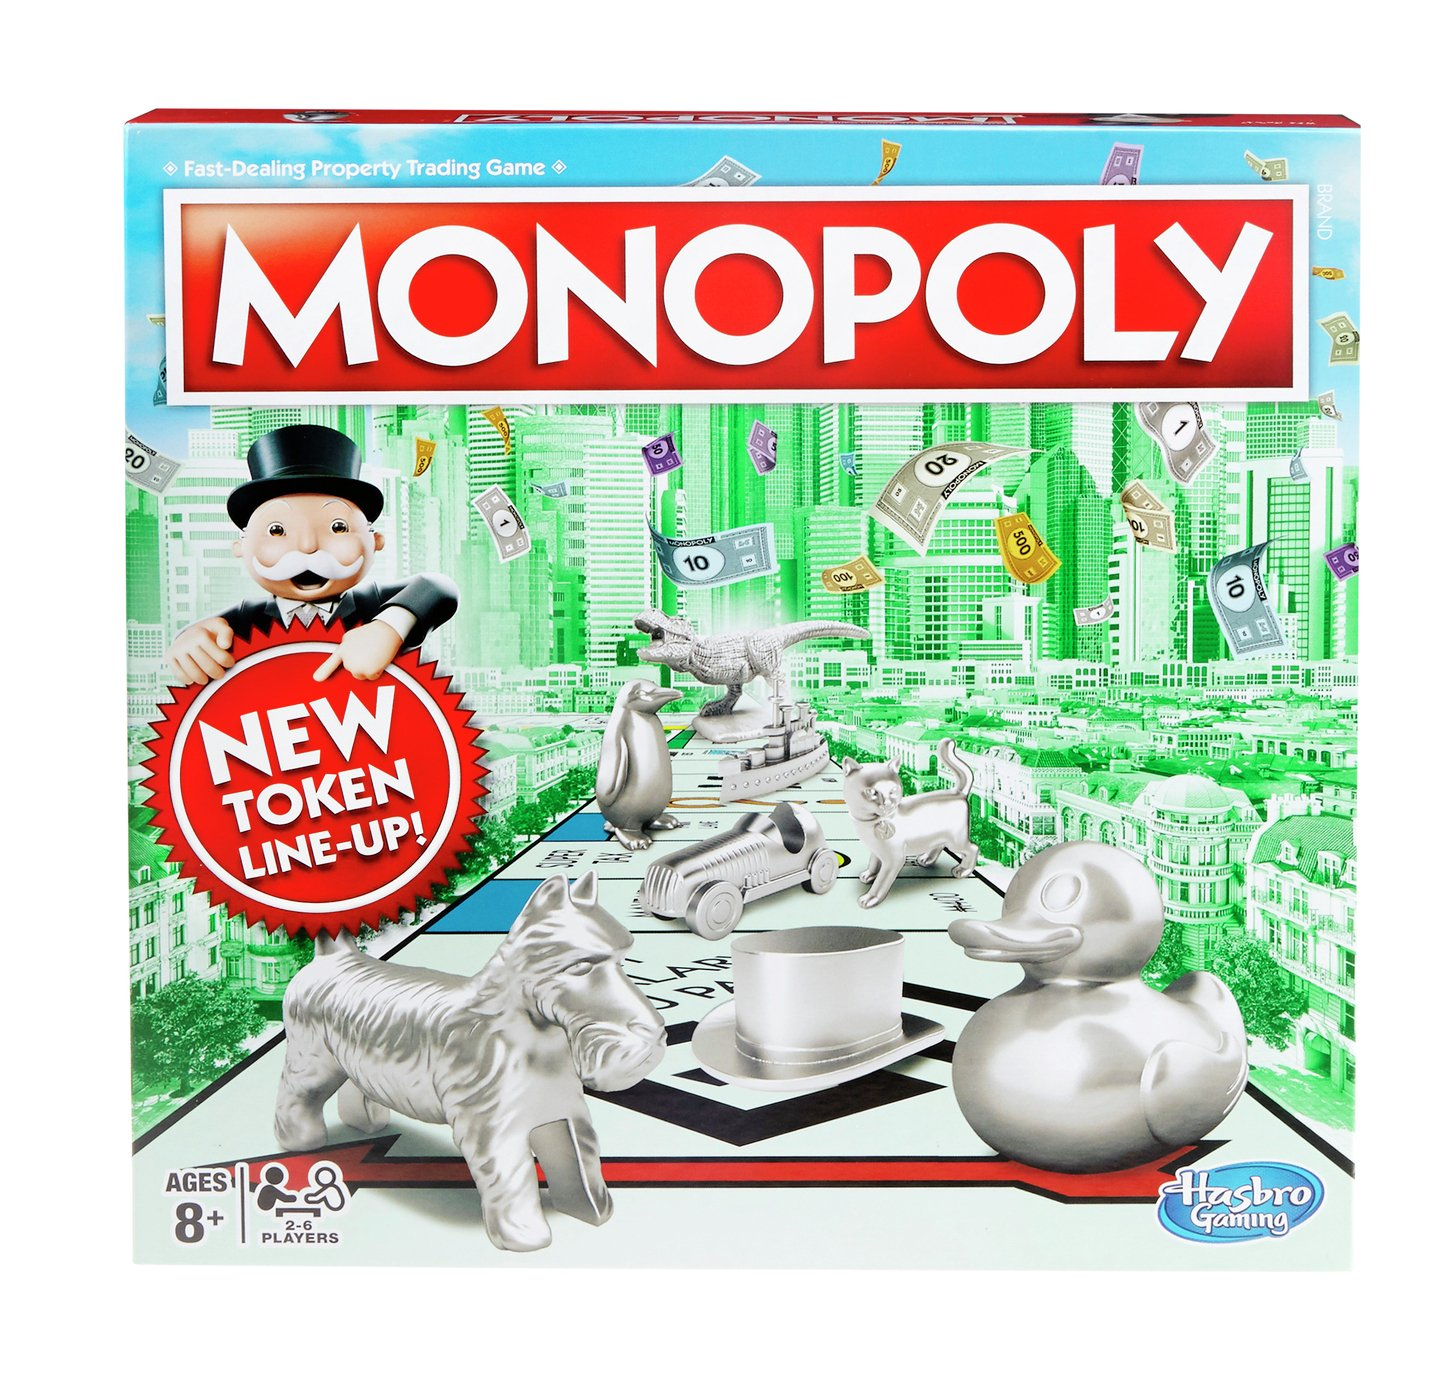 Monopoly Classic Board Game from Hasbro Gaming.